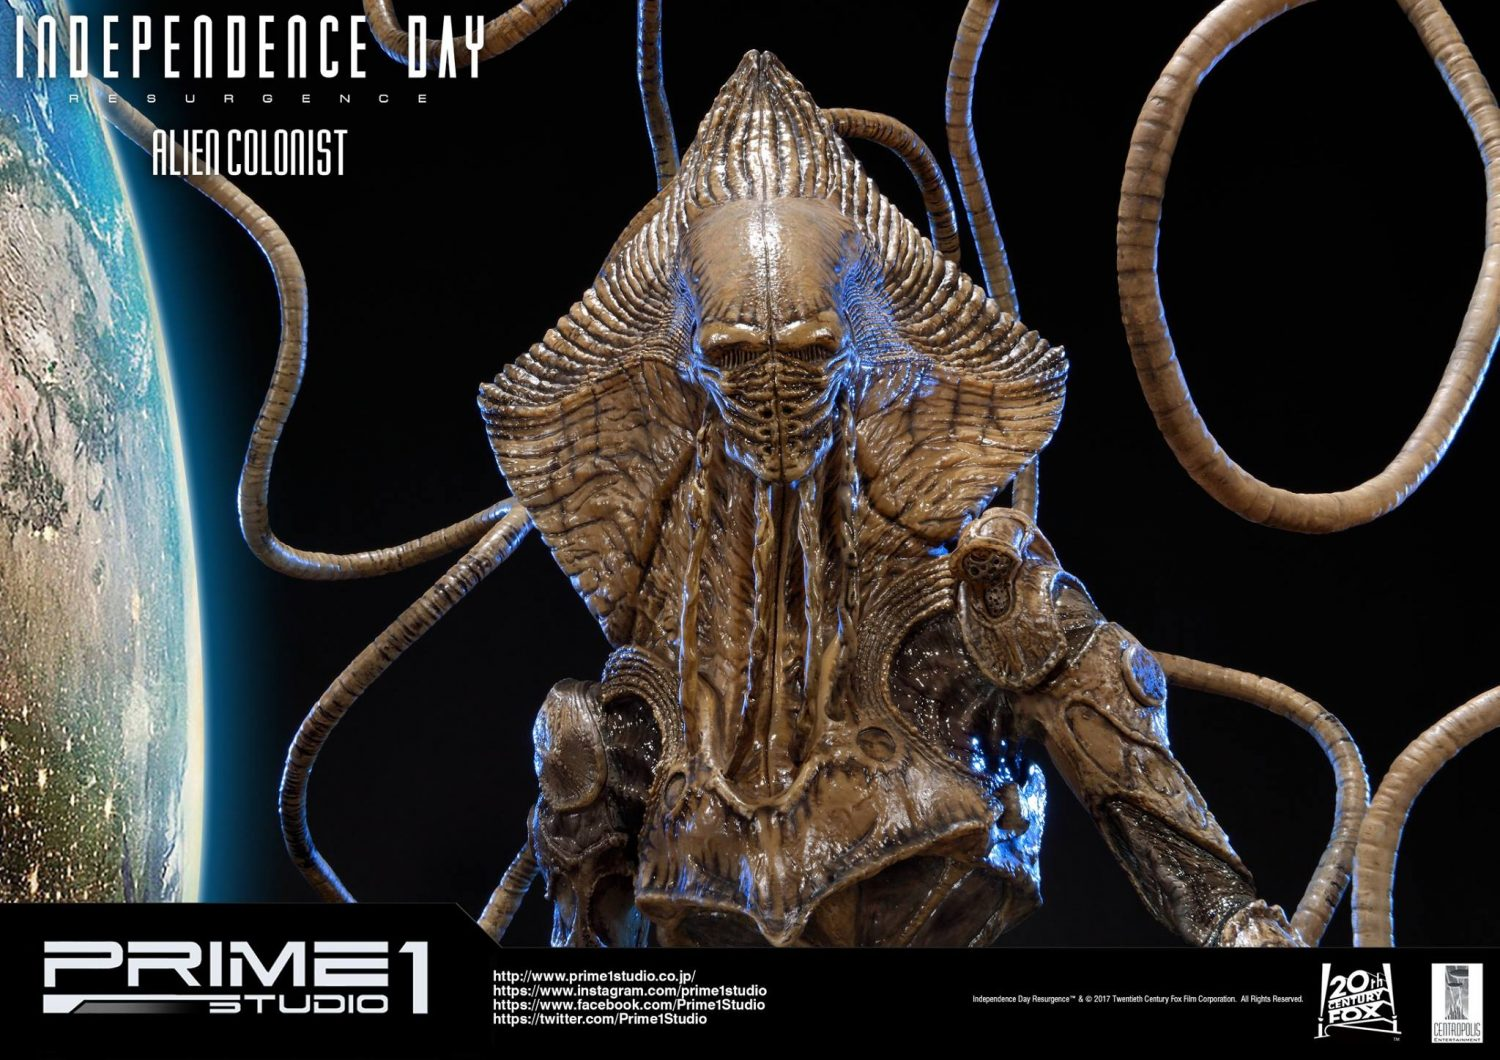 Prime 1 Studio Independence Day: Resurgence Alien Colonist Statue Pre-Orders